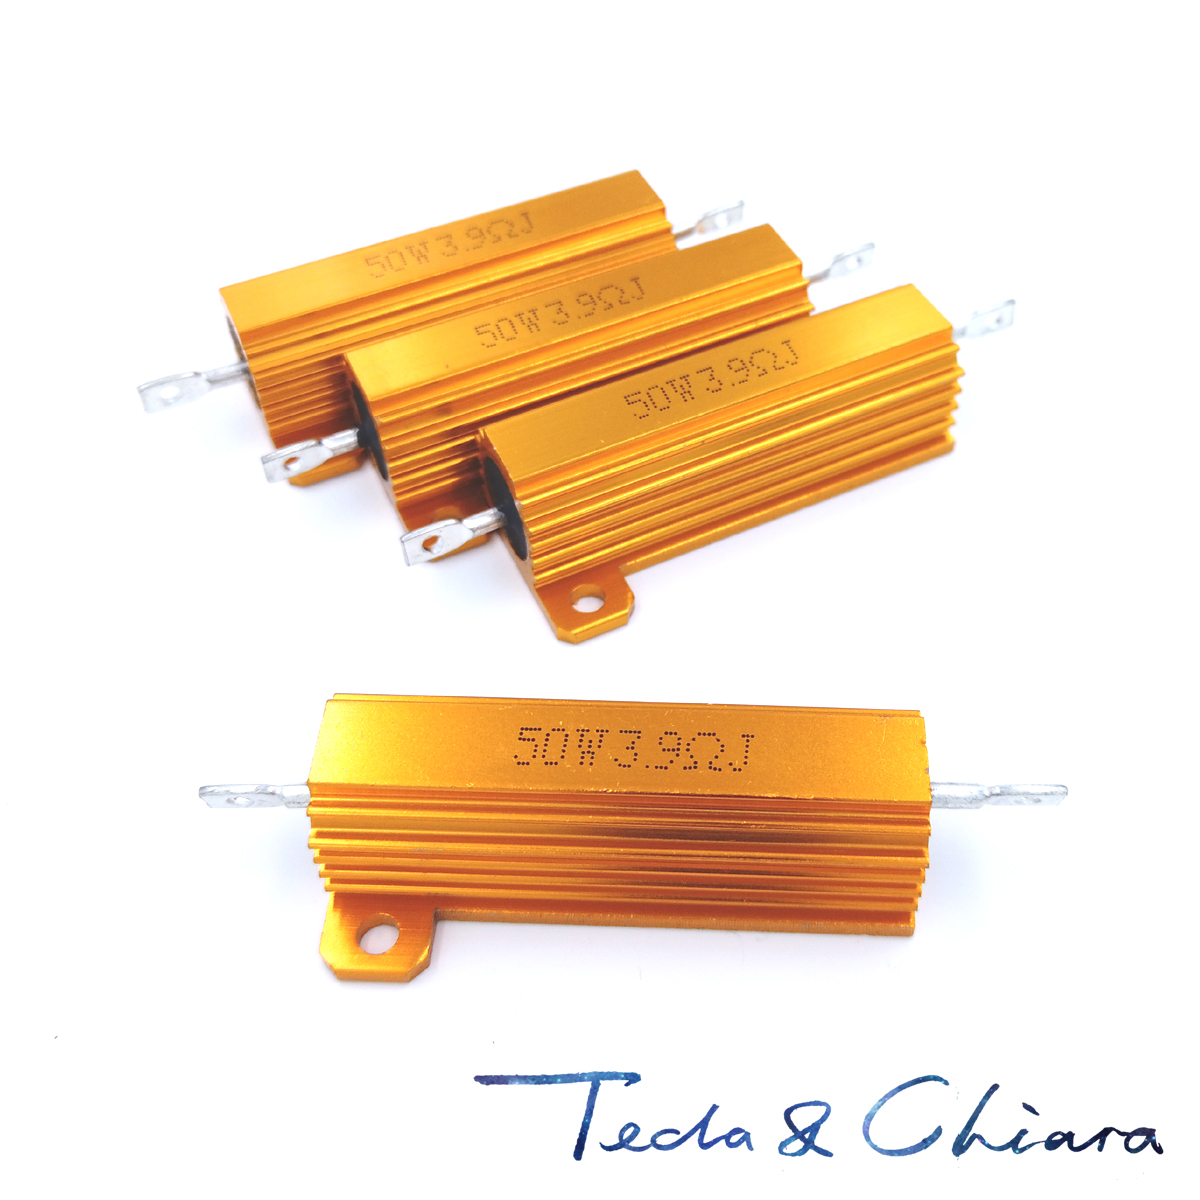 2Pcs 20R 20ohm 20 200R 200ohm 200 R Ohm 50W Aluminum Power Metal Shell Case Wirewound Resistor Resistance RX24